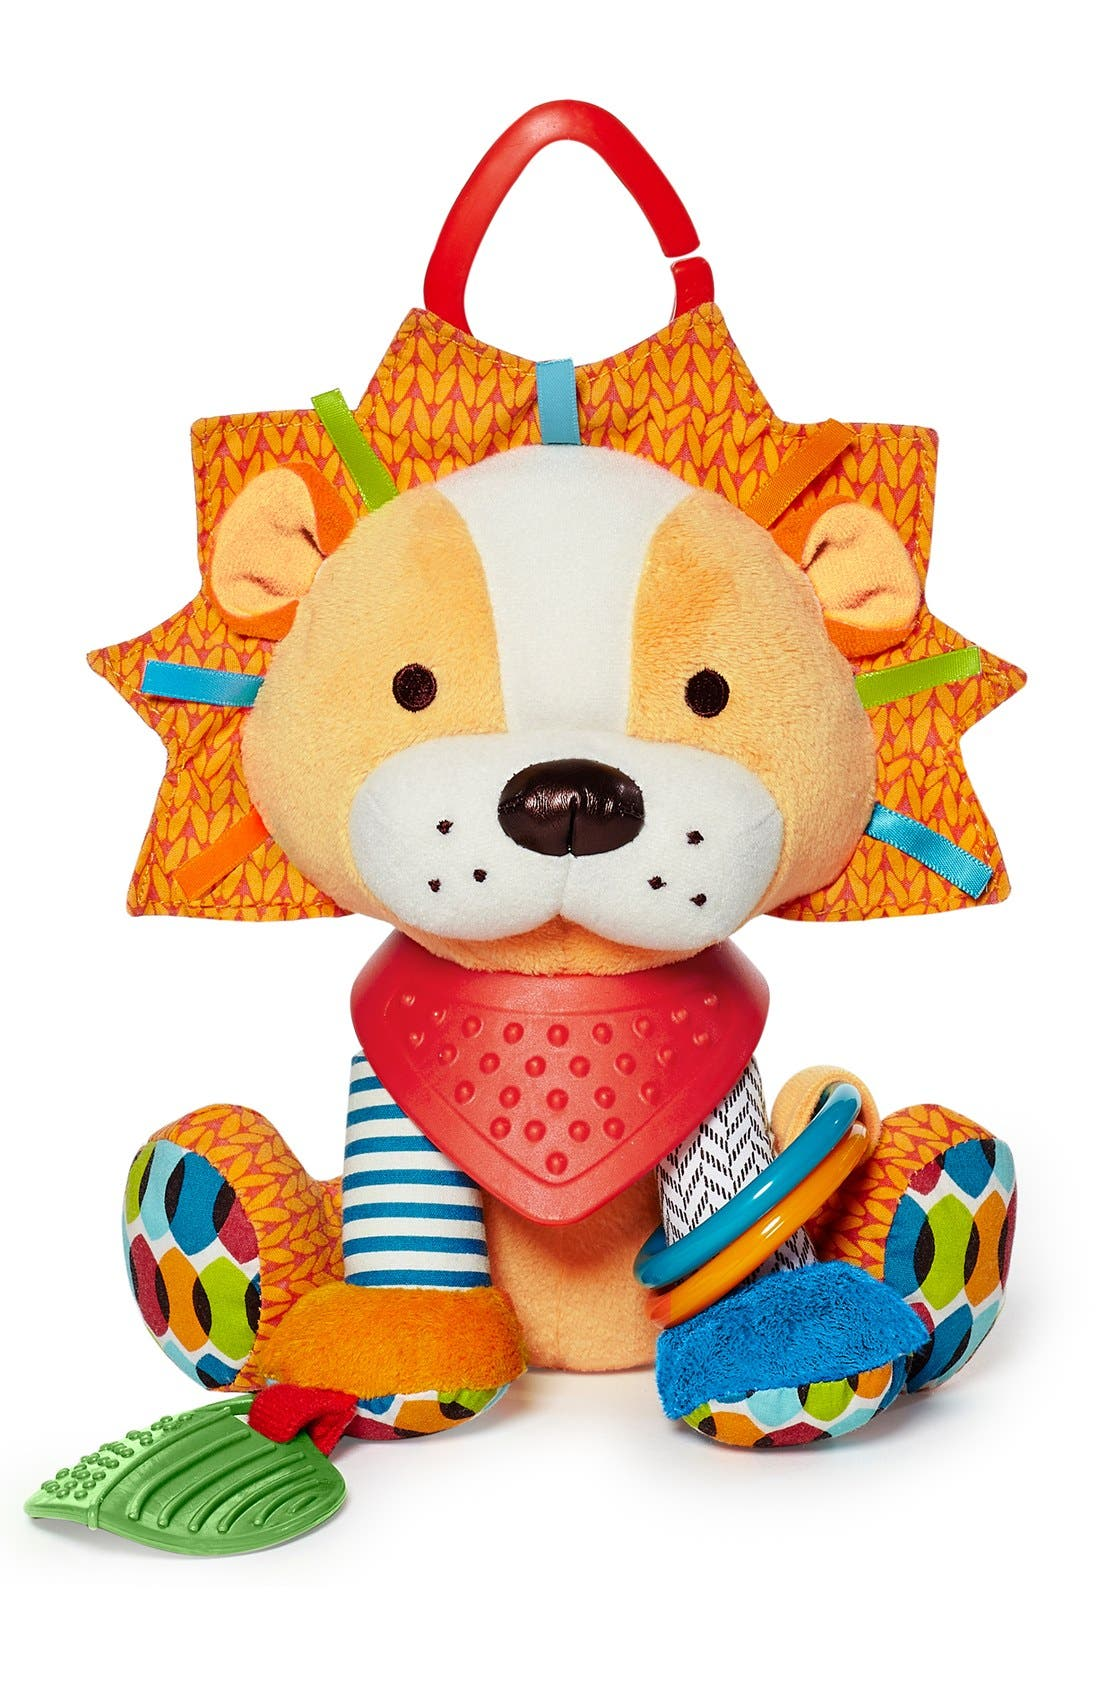 Alternate Image 1 Selected - Skip Hop 'Bandana Buddies' Activity Lion